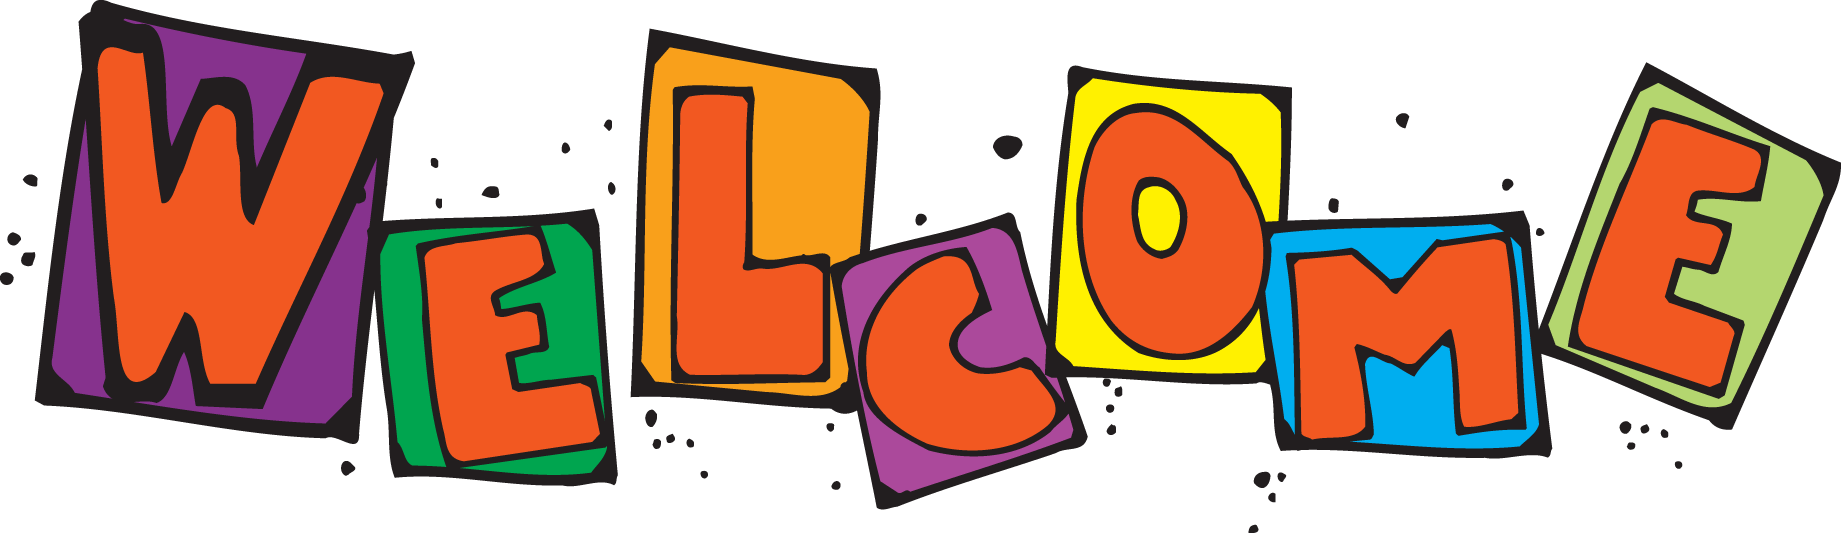 Transparent welcome free clipart. Collection of galleries welcoming